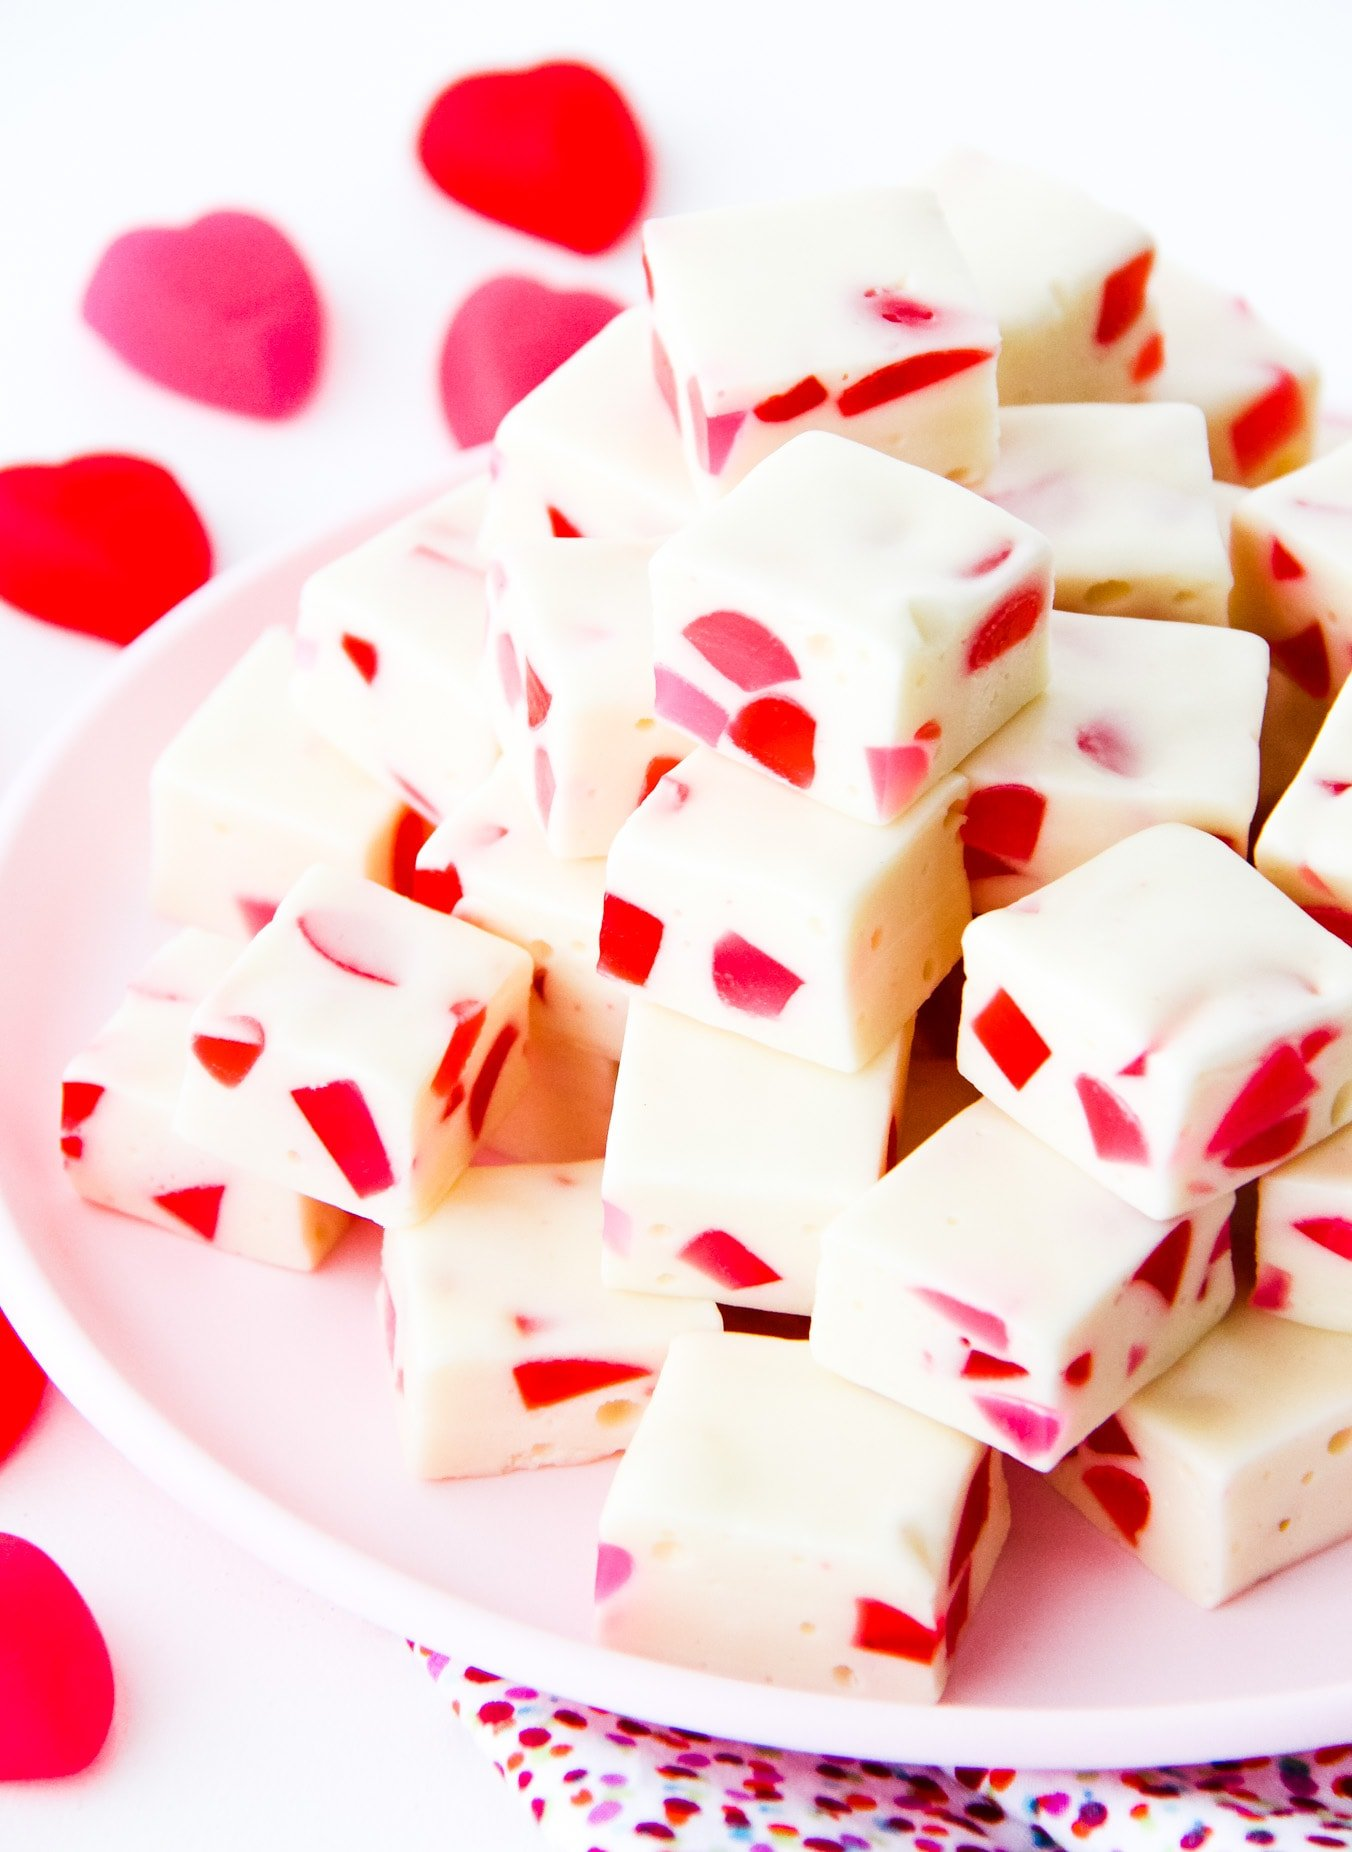 a plate of squares of nougat with red and pink gumdrops